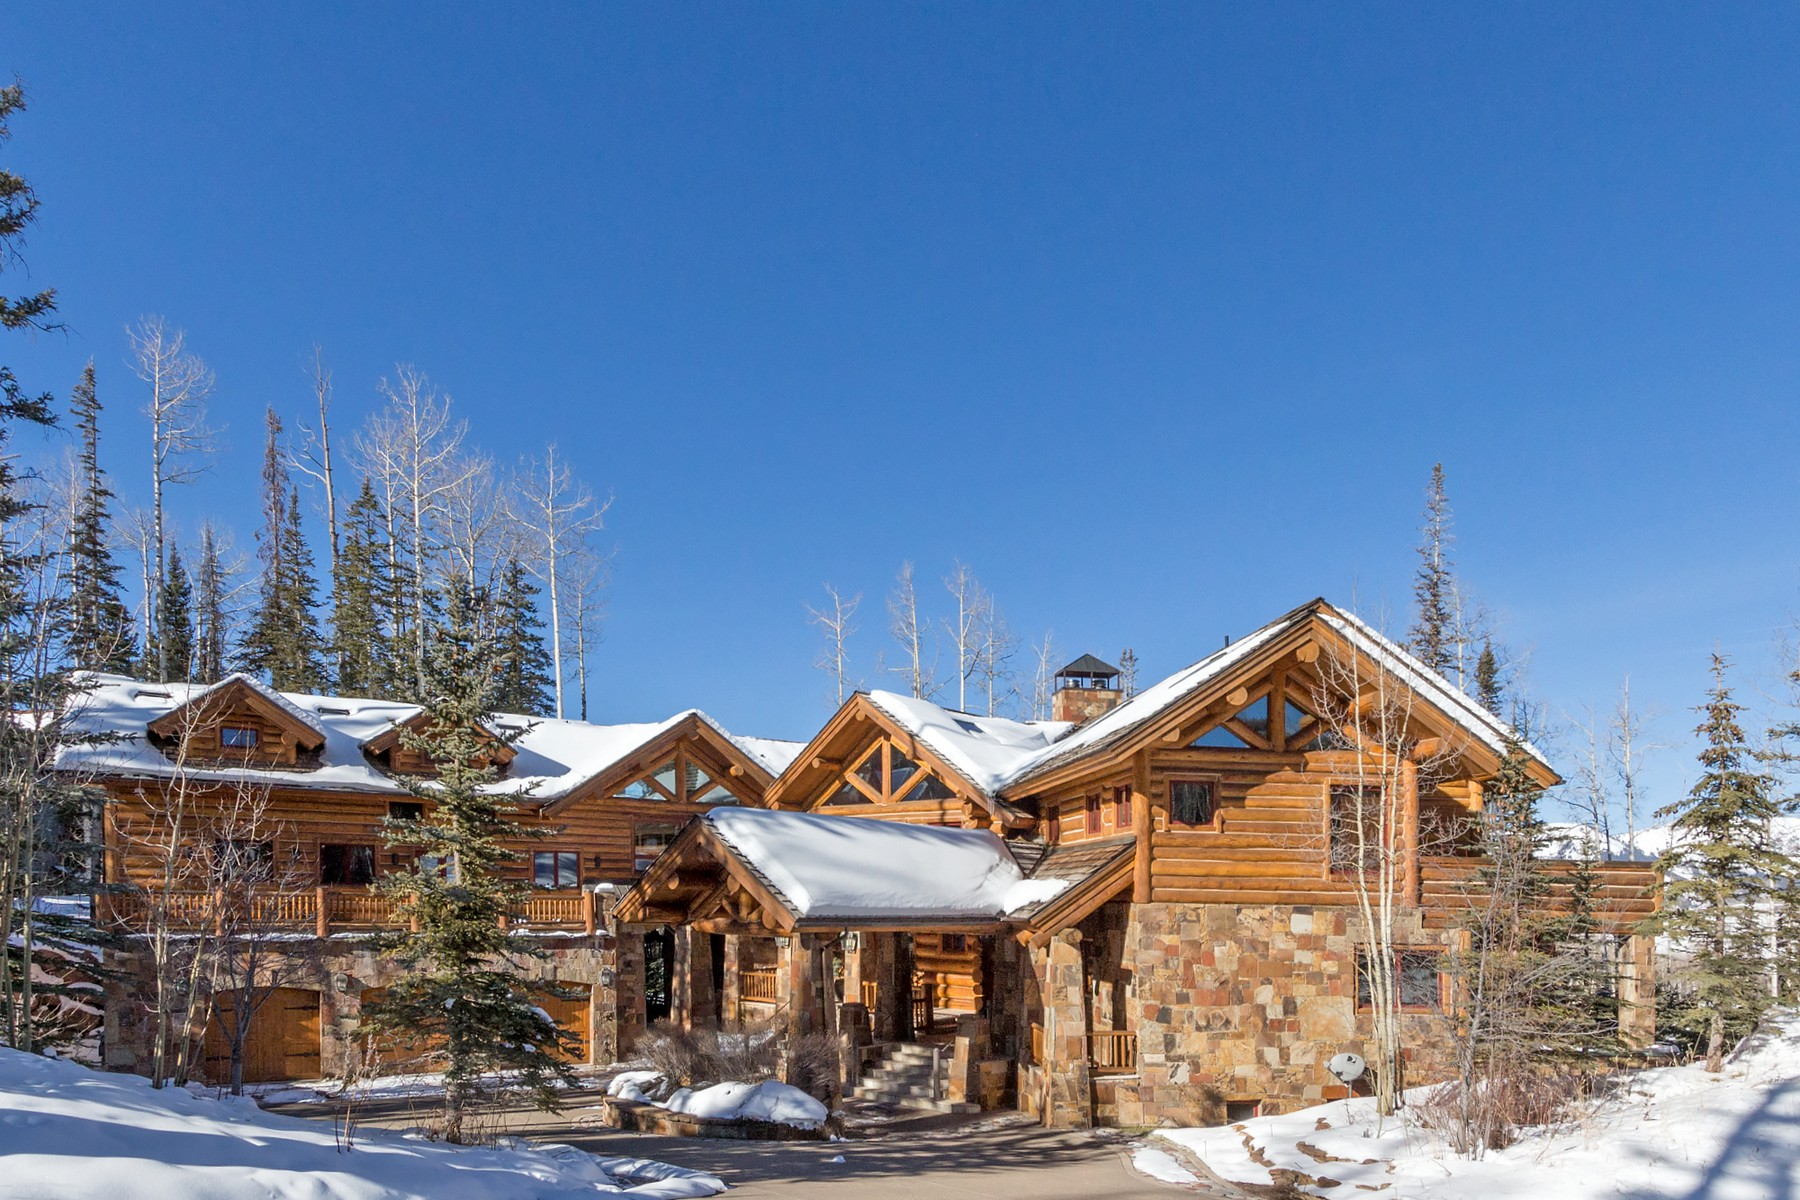 Single Family Home for Sale at 133 Polecat Lane Telluride, Colorado 81435 United States